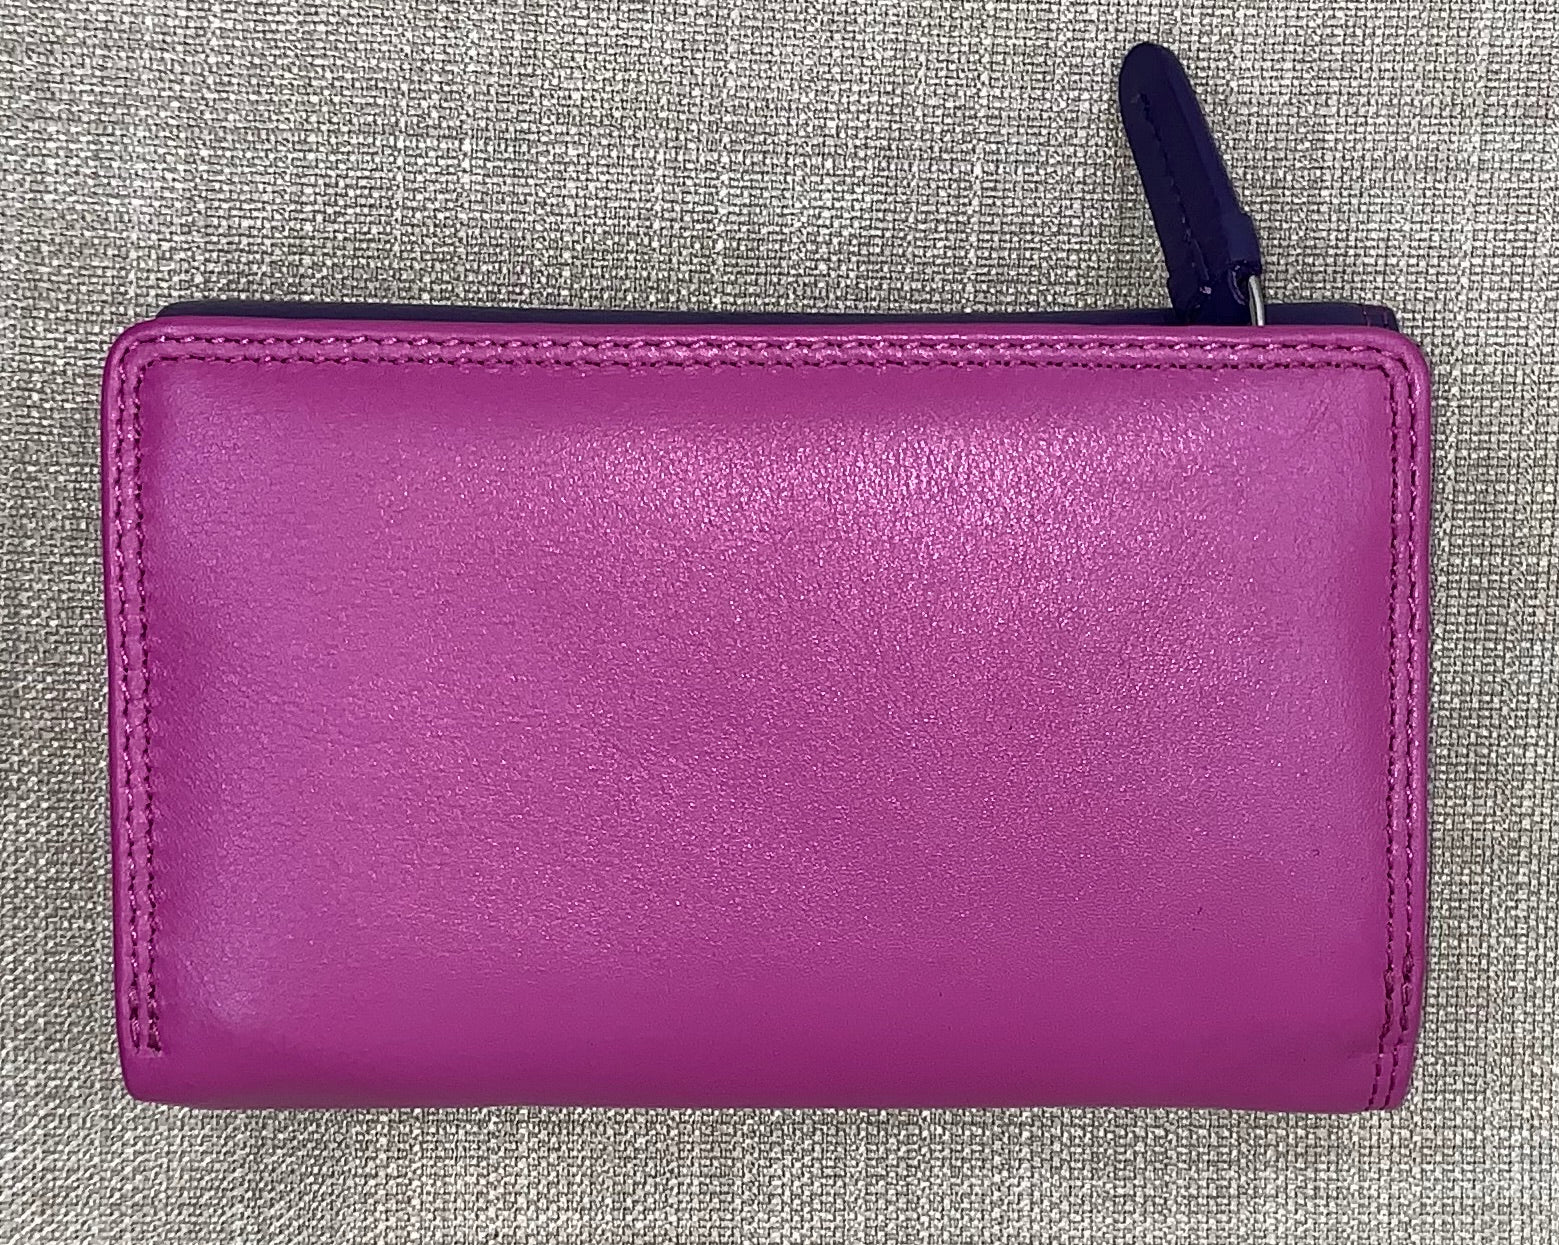 Visconti Bora Ladies Leather Two Tone Berry Coloured Purse